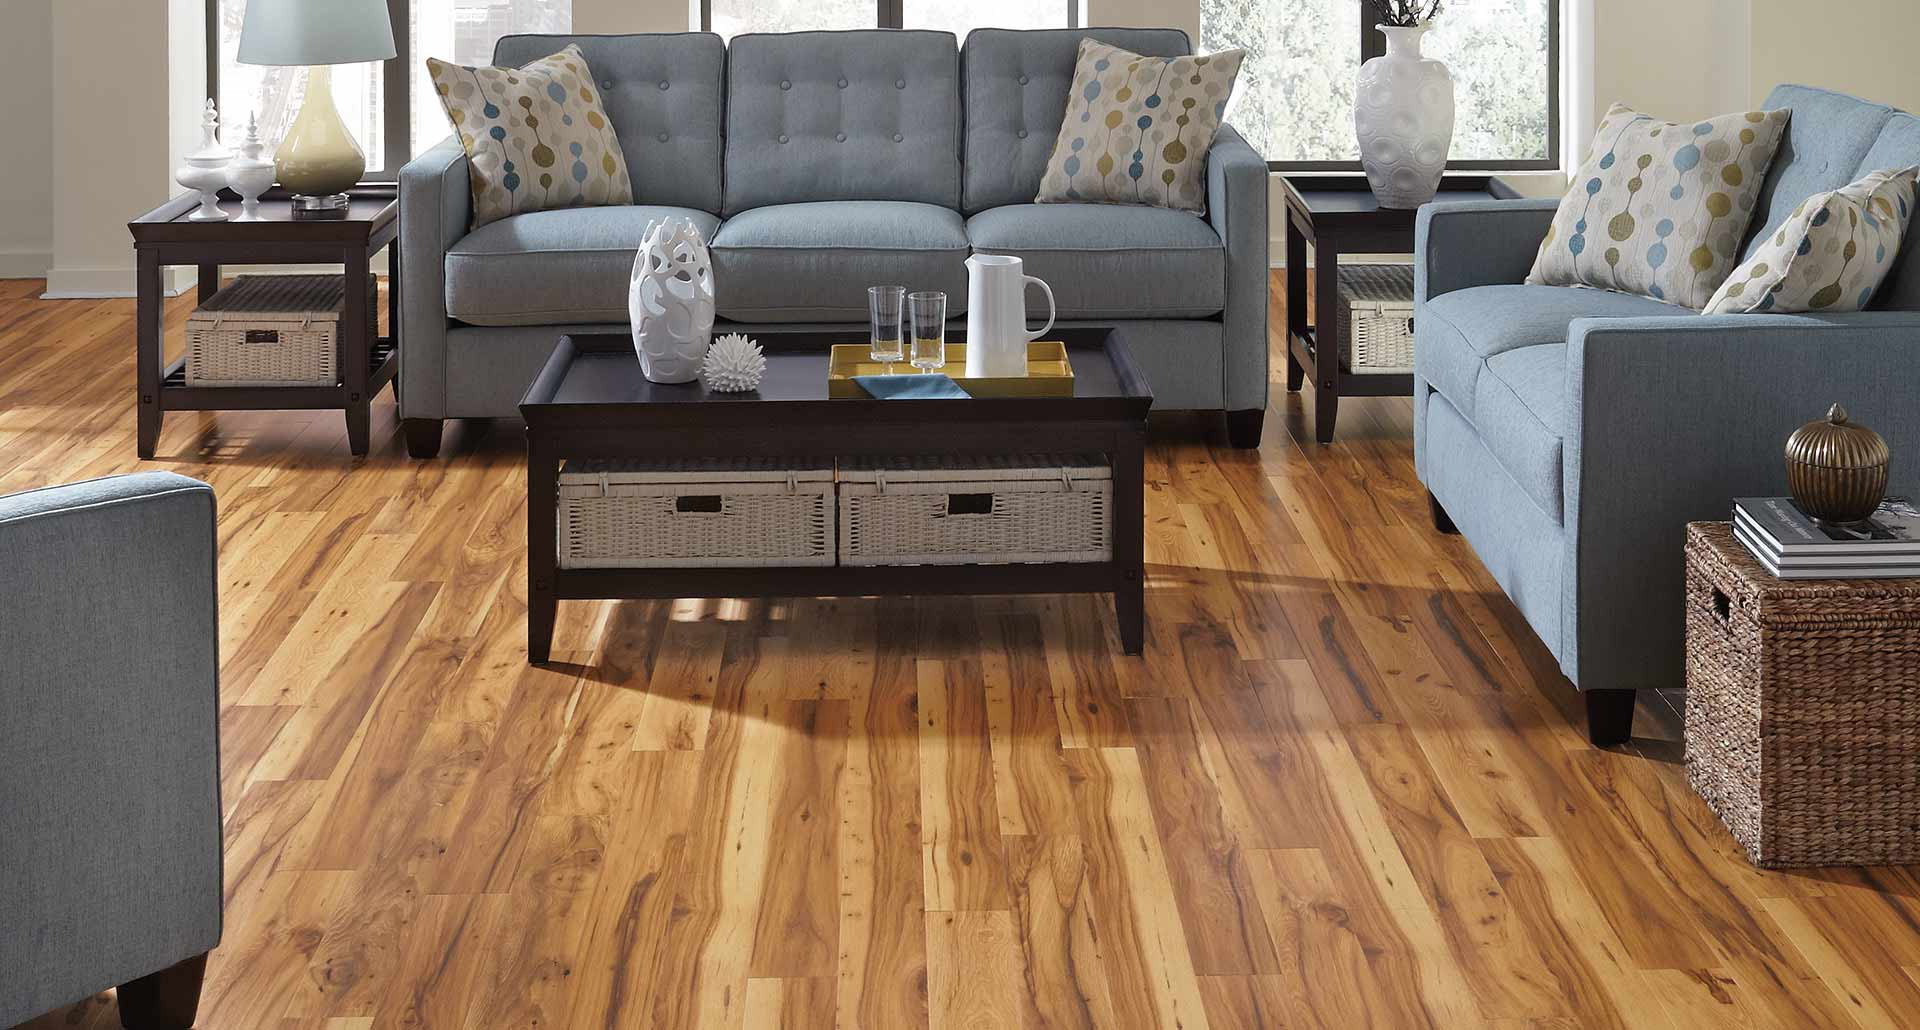 Top 15 Flooring Materials Costs Pros Amp Cons 2017 2018